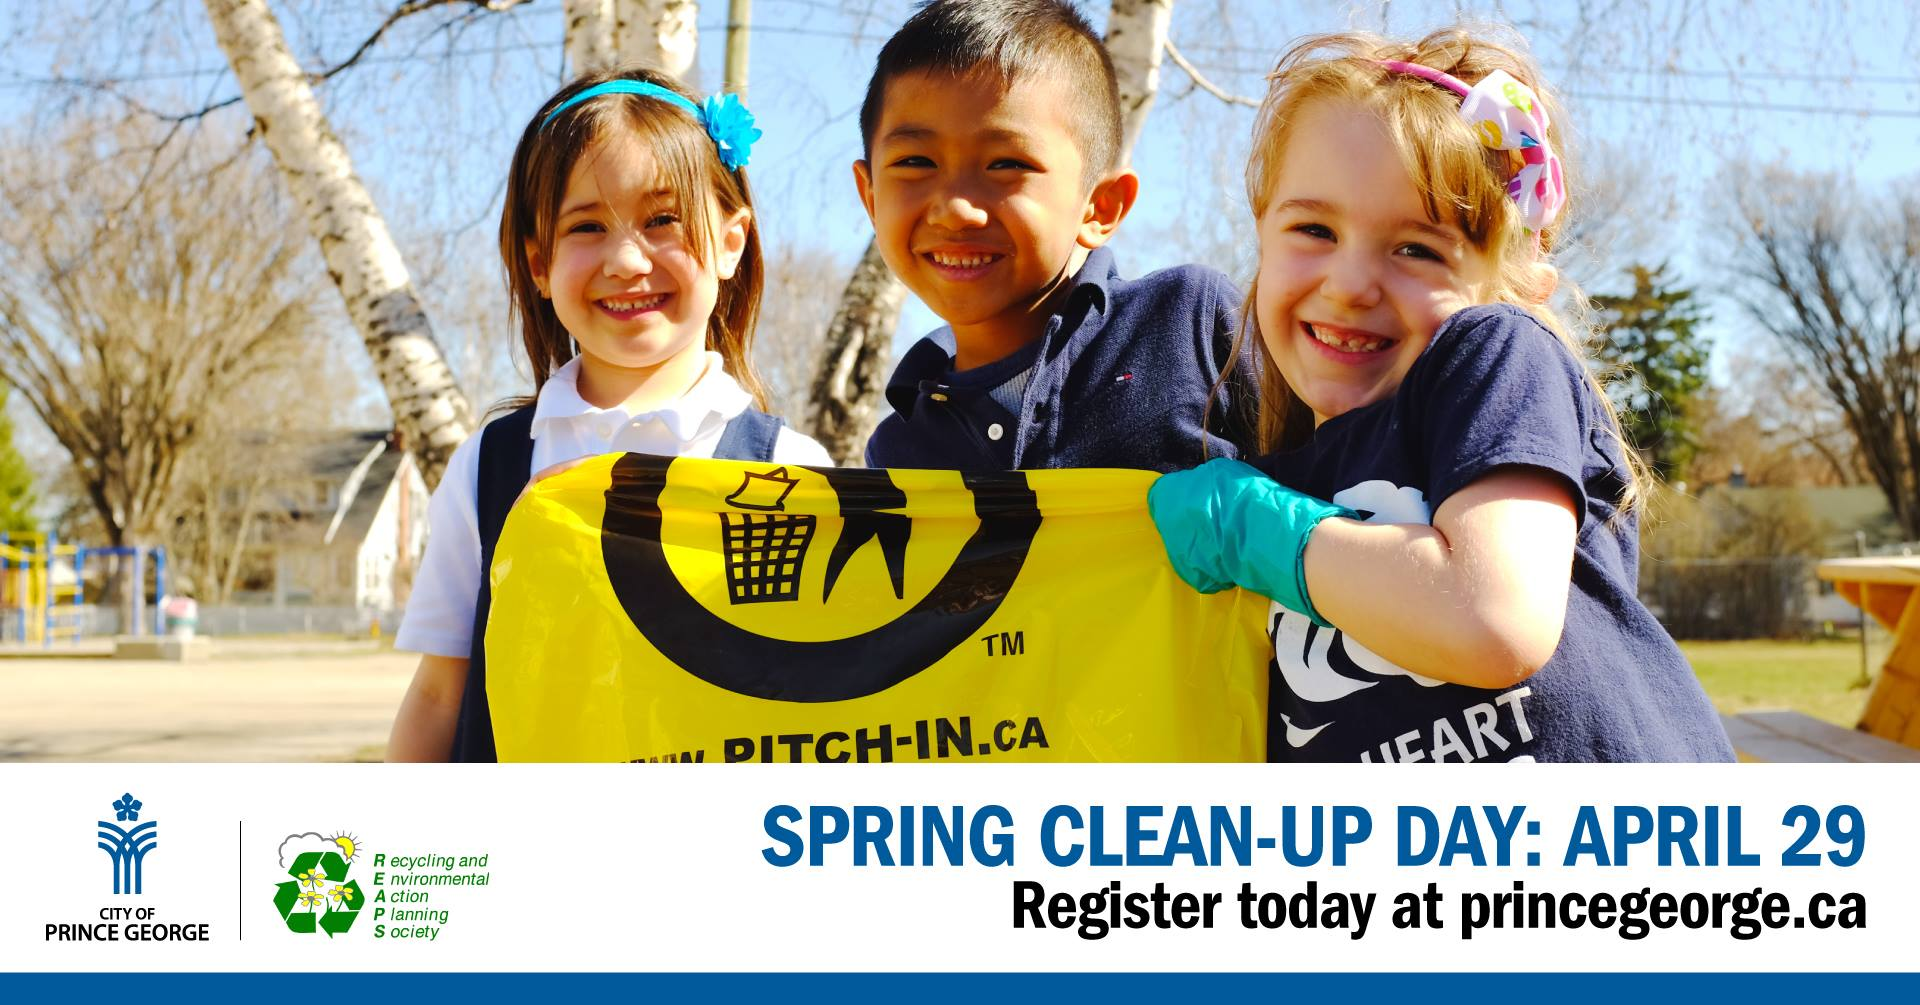 ANNUAL CITY-WIDE SPRING CLEAN-UP DAY